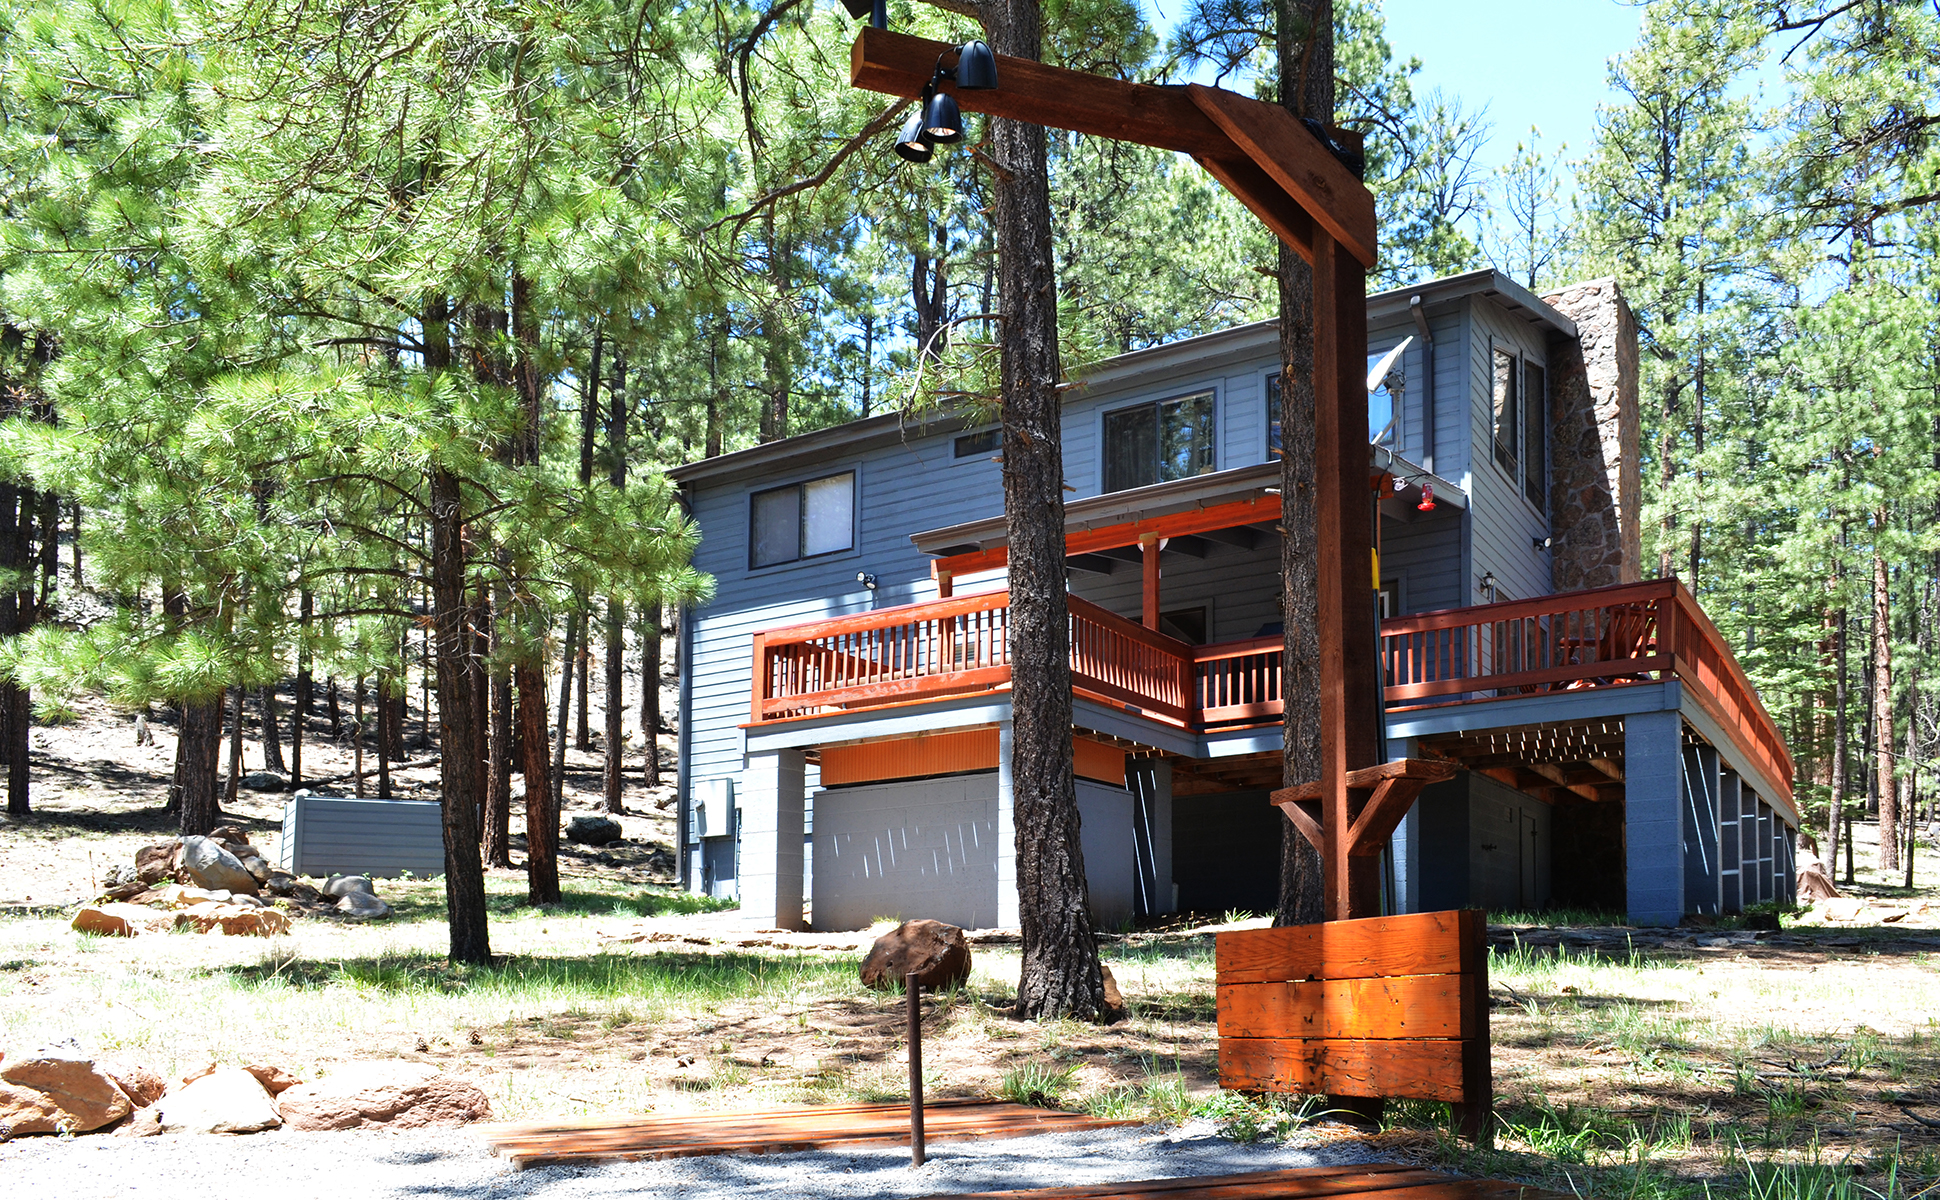 type site mcdonald in tn tennessee lodging rentals north koa cabin chattanooga cleveland campgrounds cabins